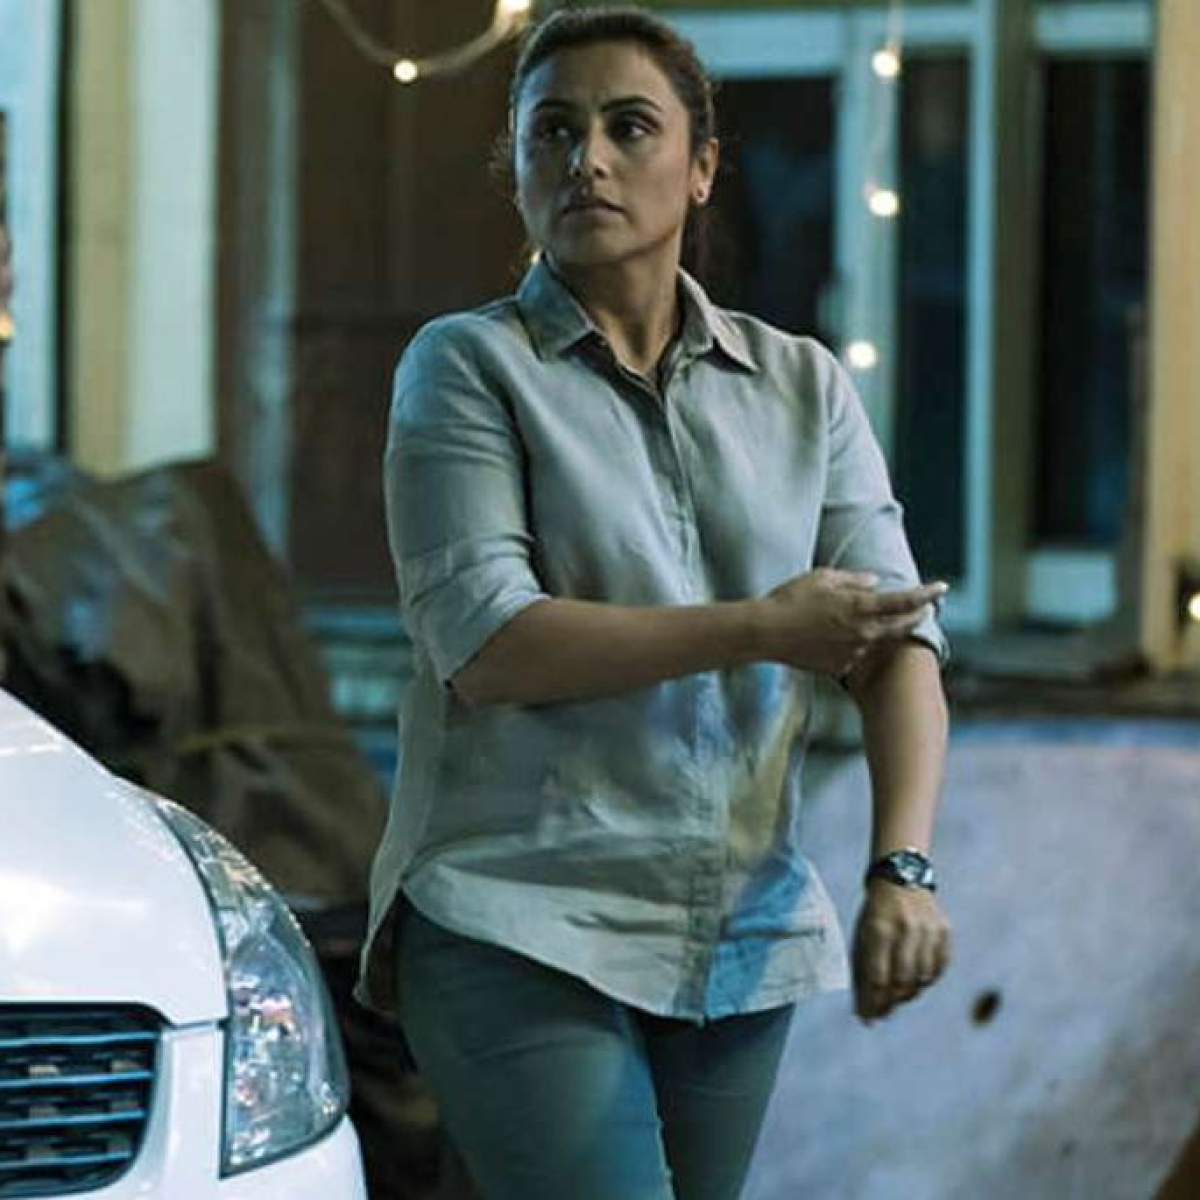 'We have to empower, support and root for each other': Rani Mukerji on Women's Day 2021